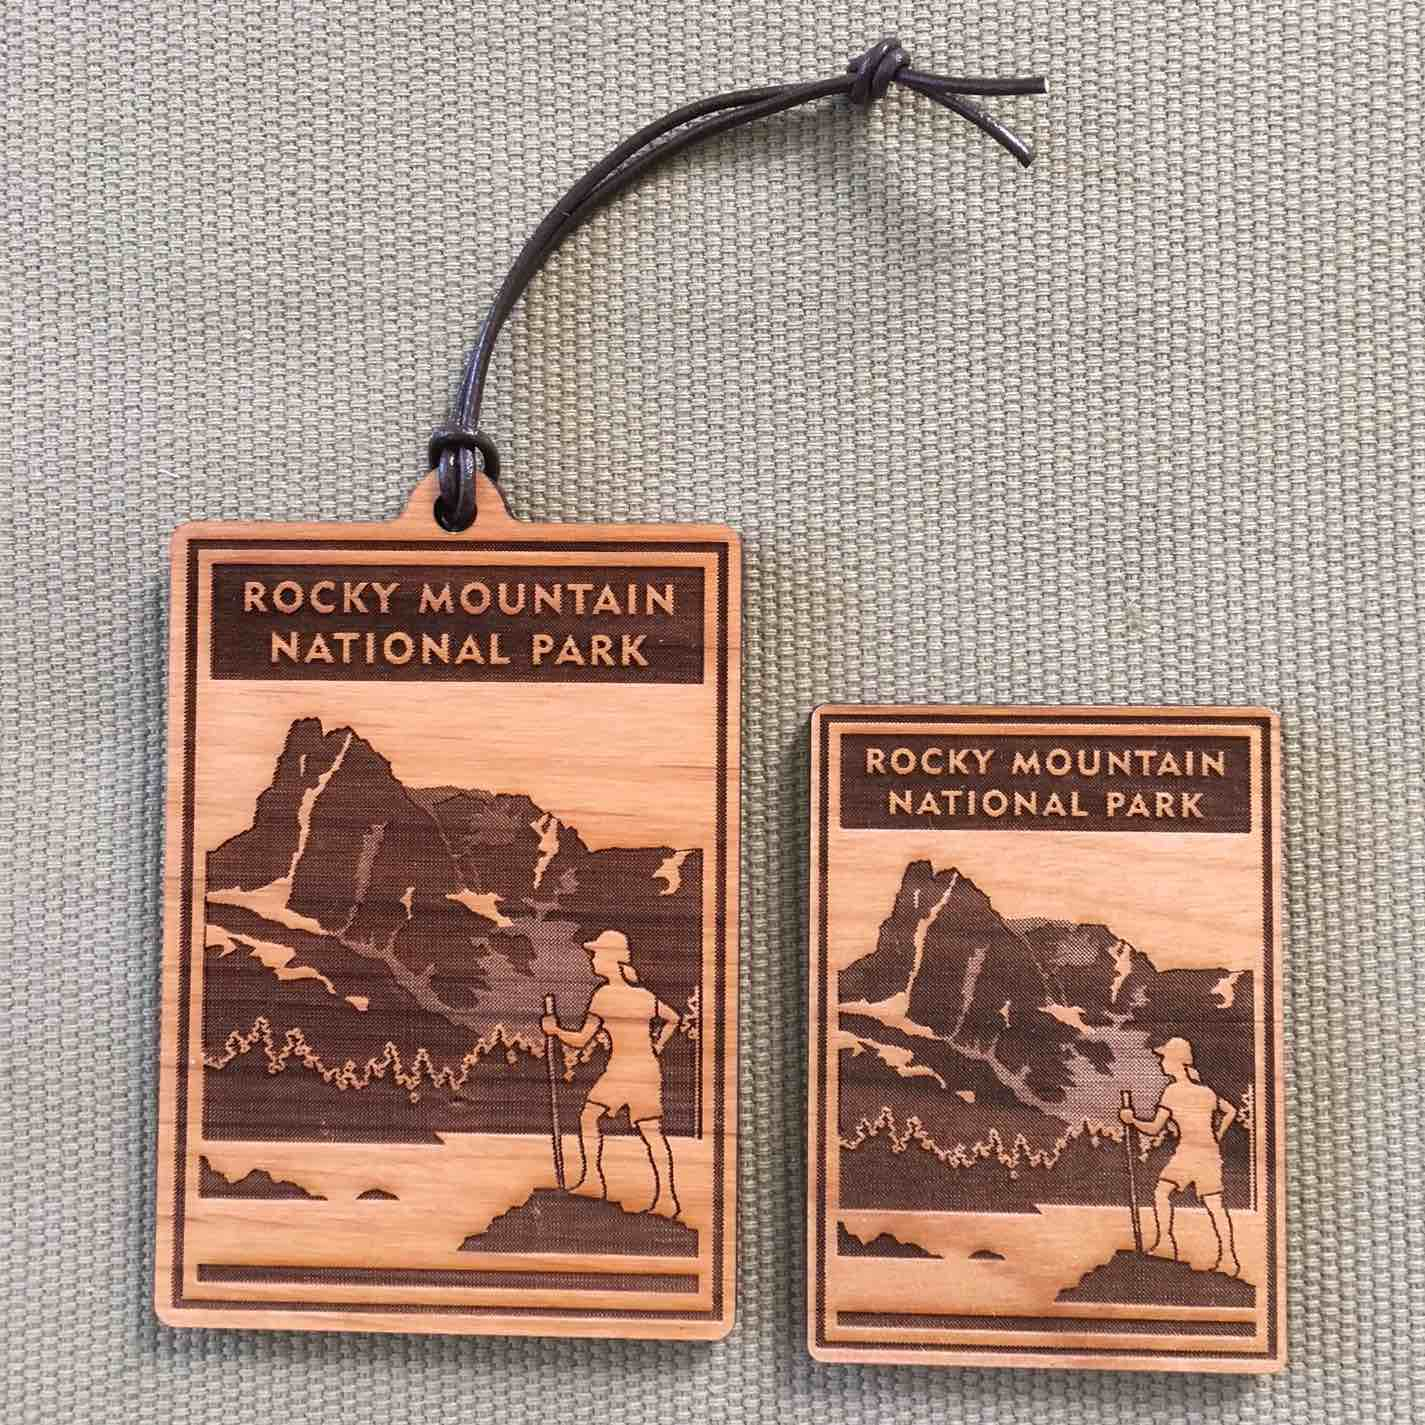 Rocky Mountain National Park – Scenic Icon Series